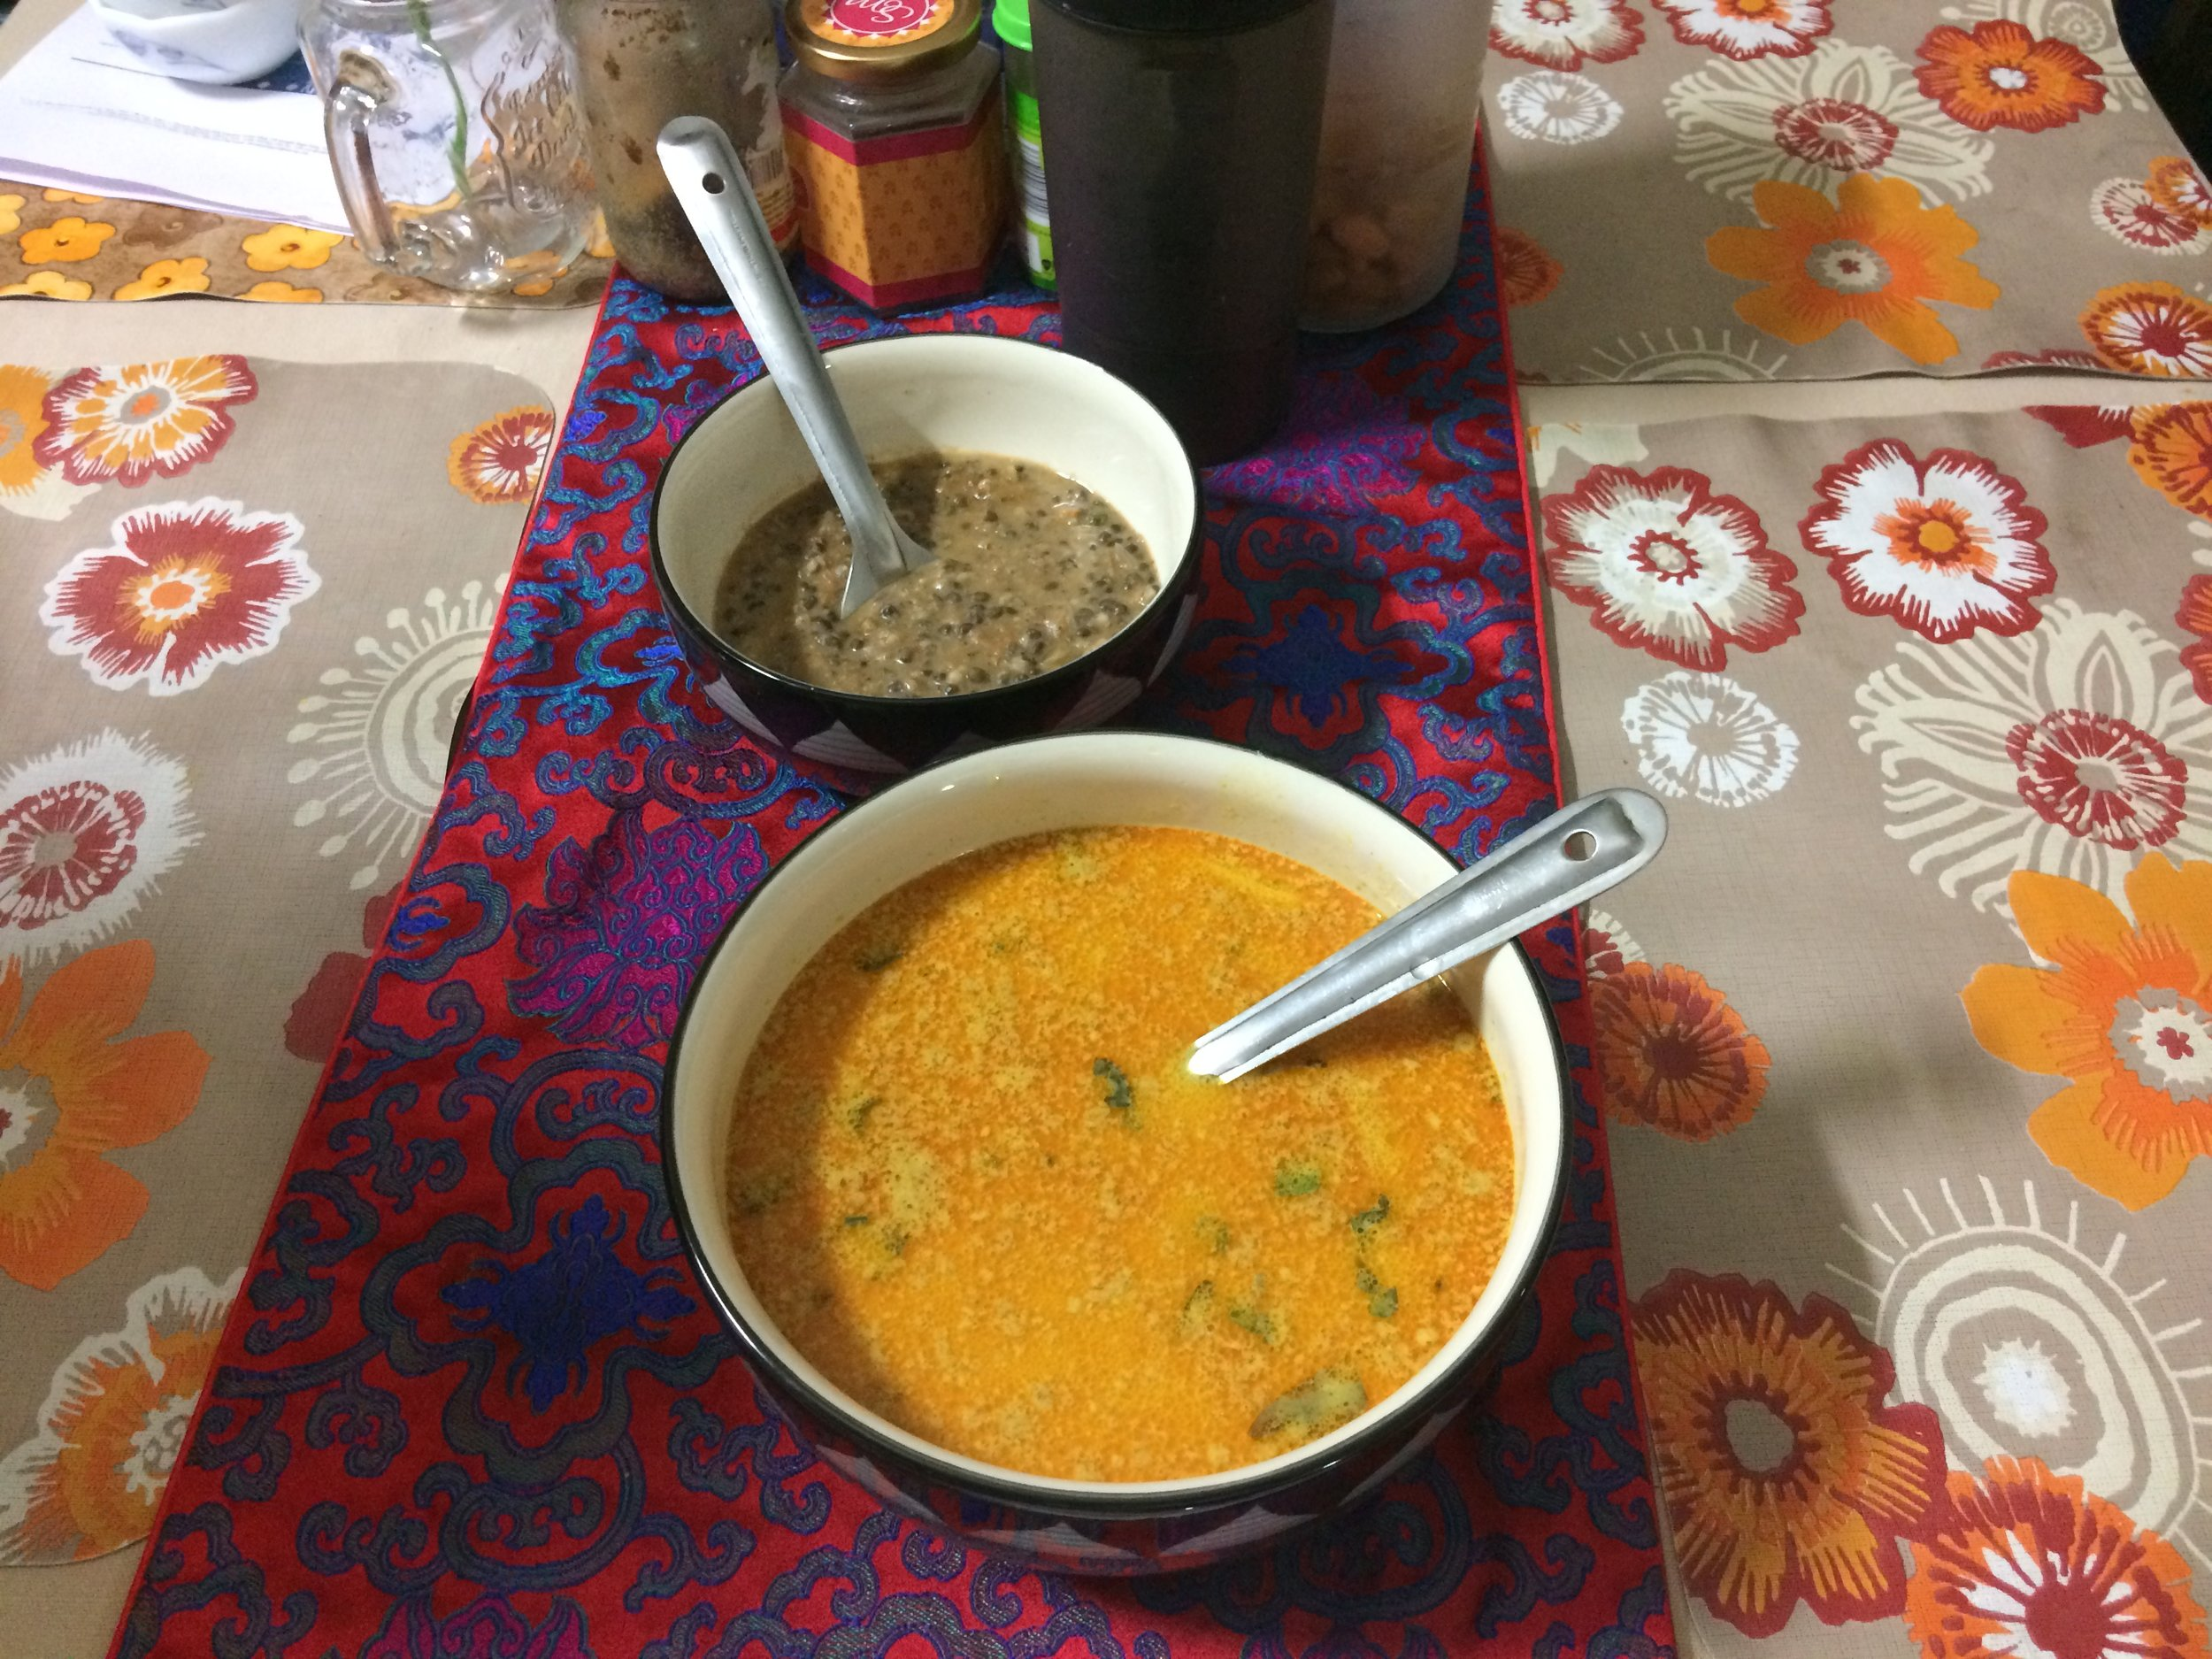 Vegetarian Thai curry with side dish - Dal Makhani made from lentils cooked in loads and loads of butter.